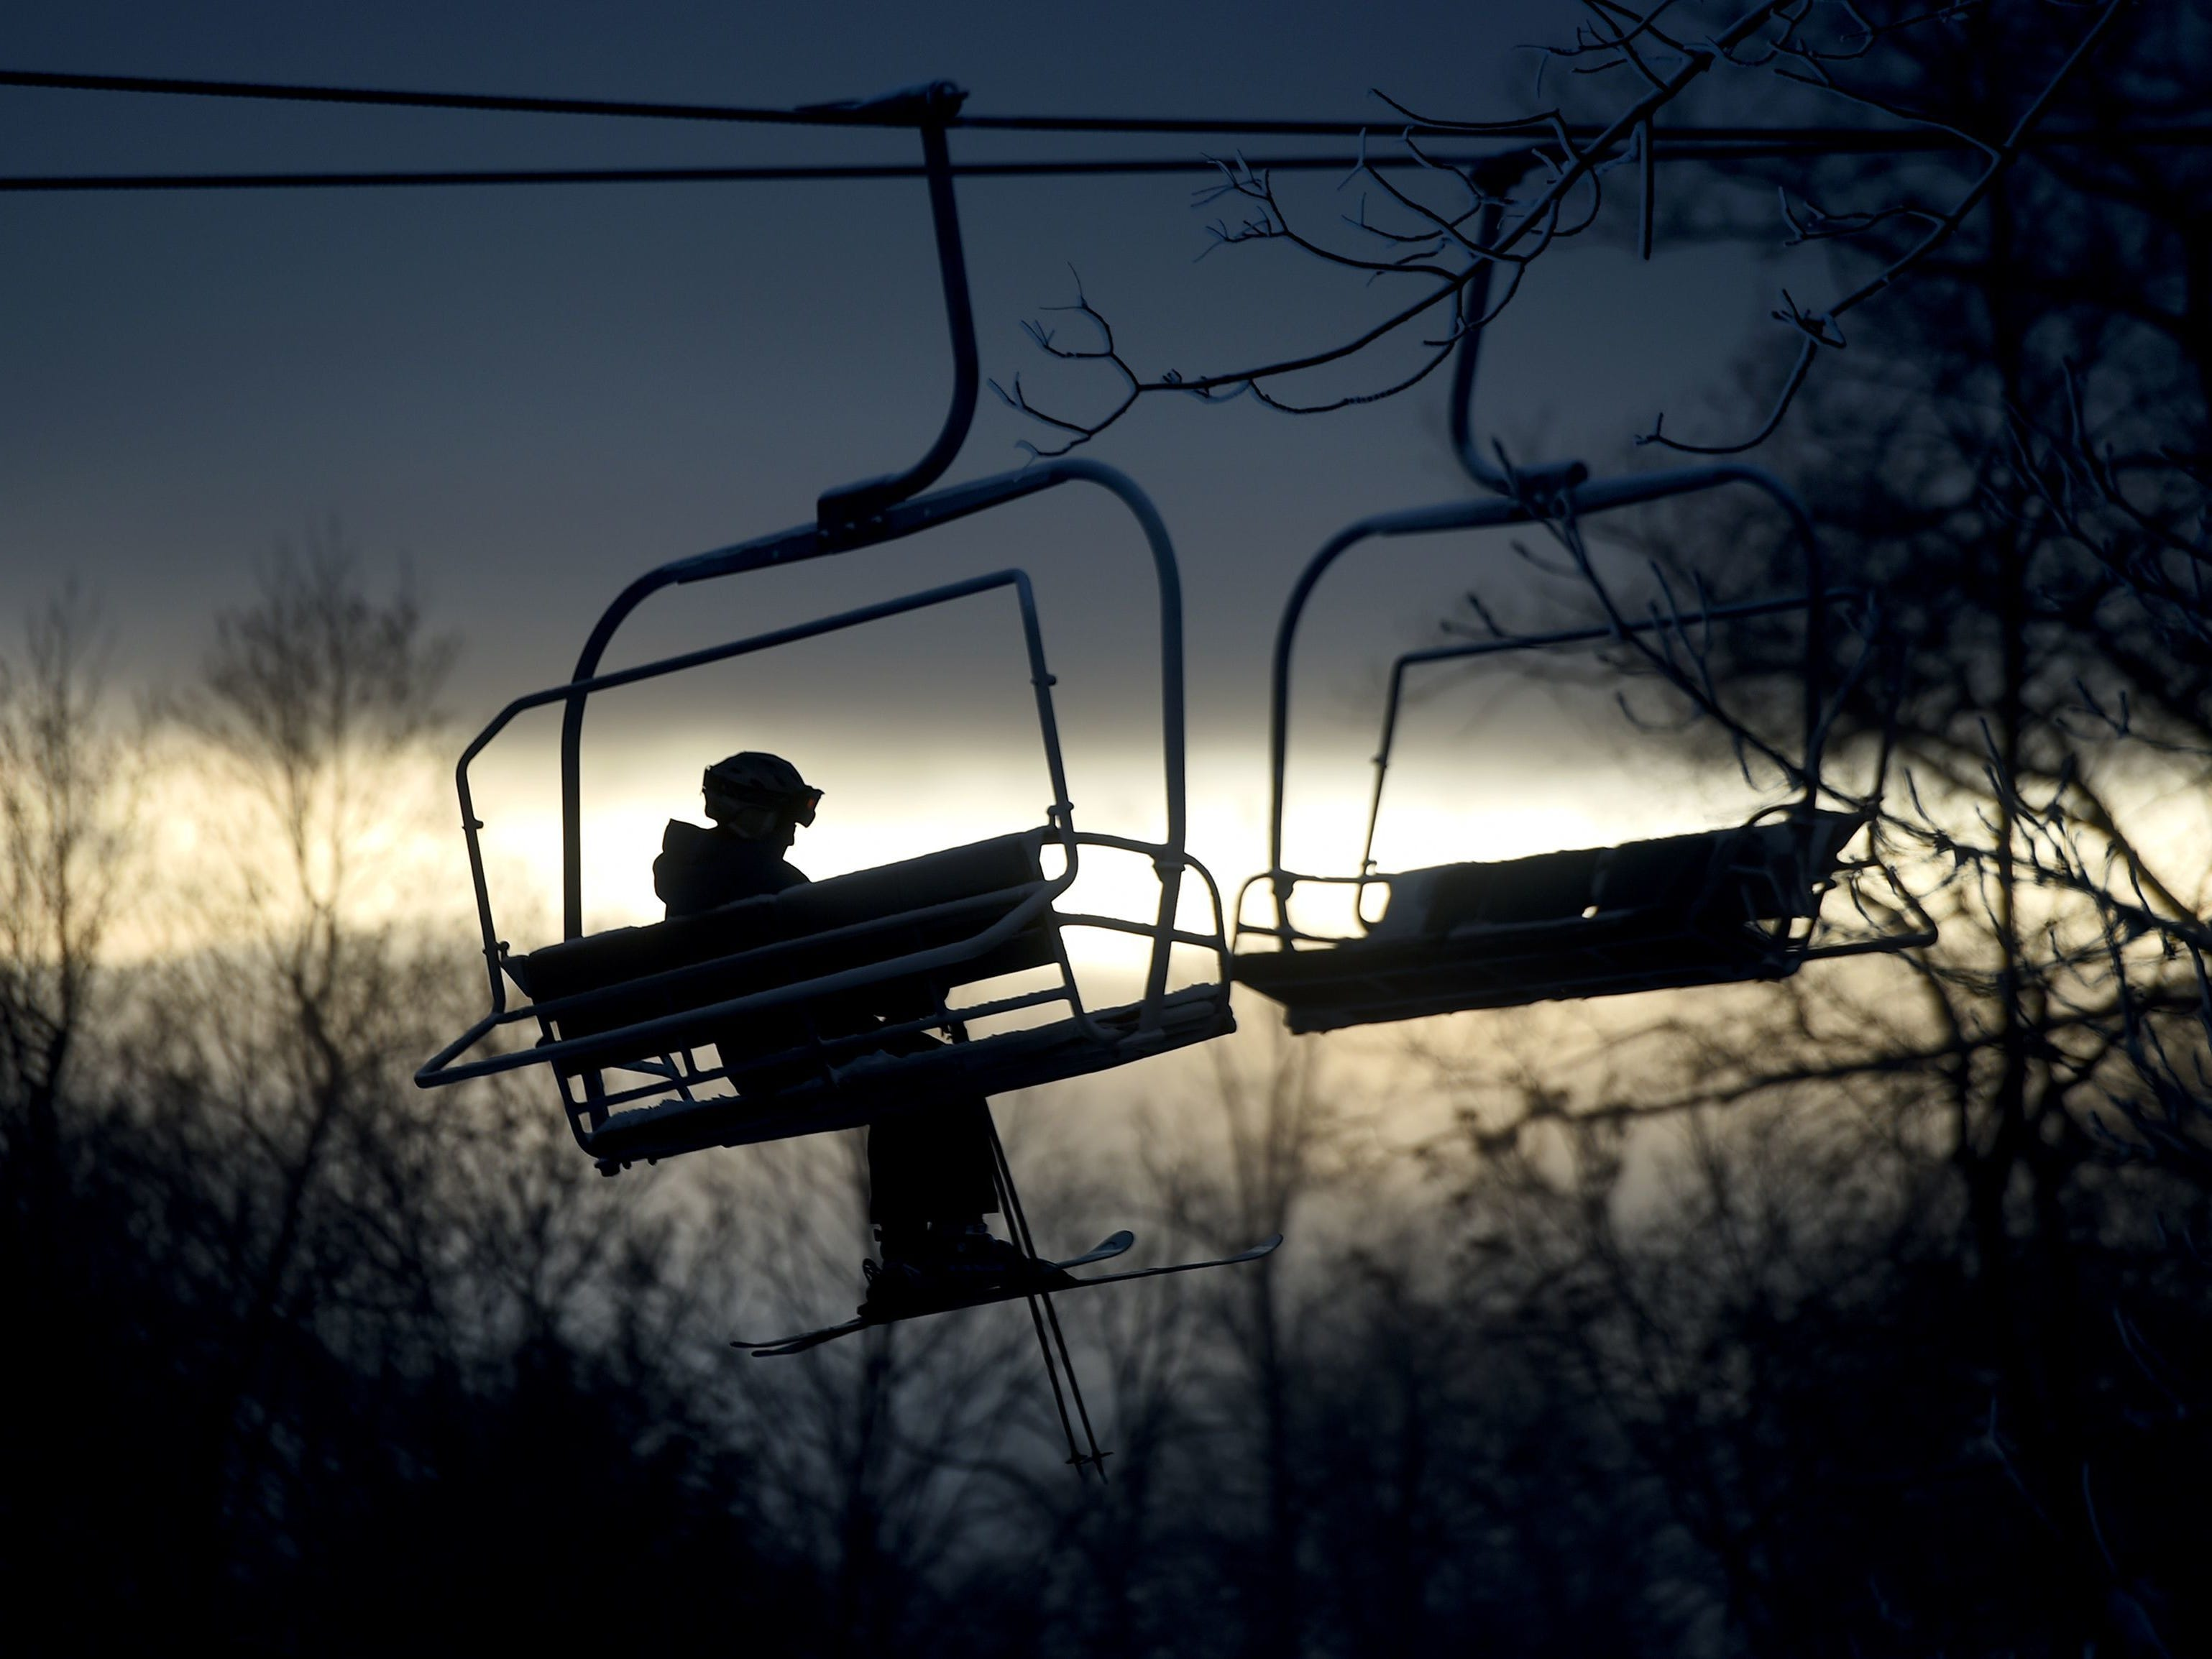 A lone skier rides a lift during the early morning at Roundtop Mountain Resort on opening day December 14, 2017.